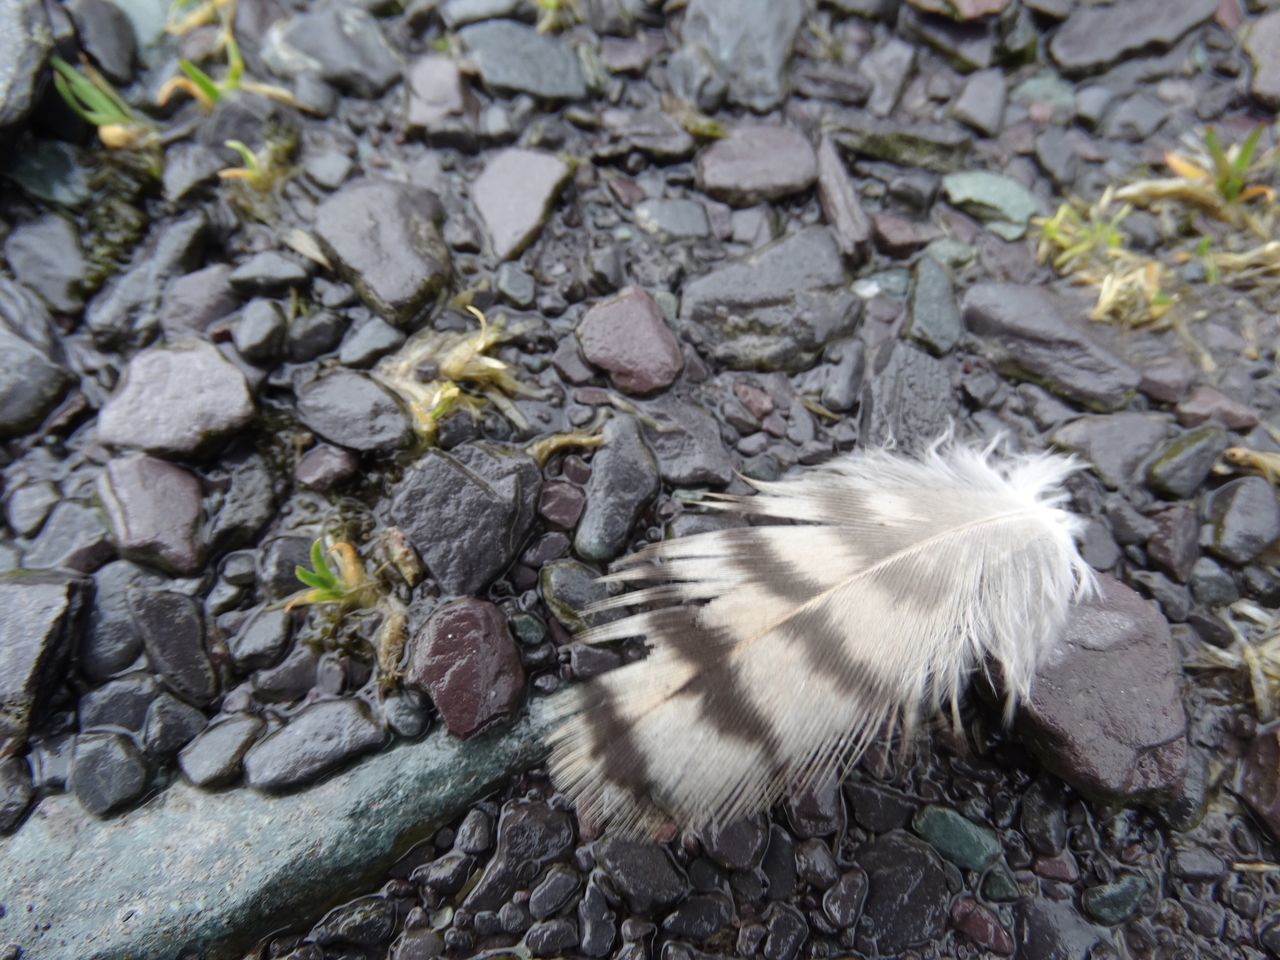 Small feather on stones. Feather  Feathers Bird Feather Bird Feathers Outdoors High Angle View Animal Themes No People Nature Close-up Day Stones Pebbles Wet Pebble Wildlife & Nature Wild Wildlife Softness Fluffy Rocks